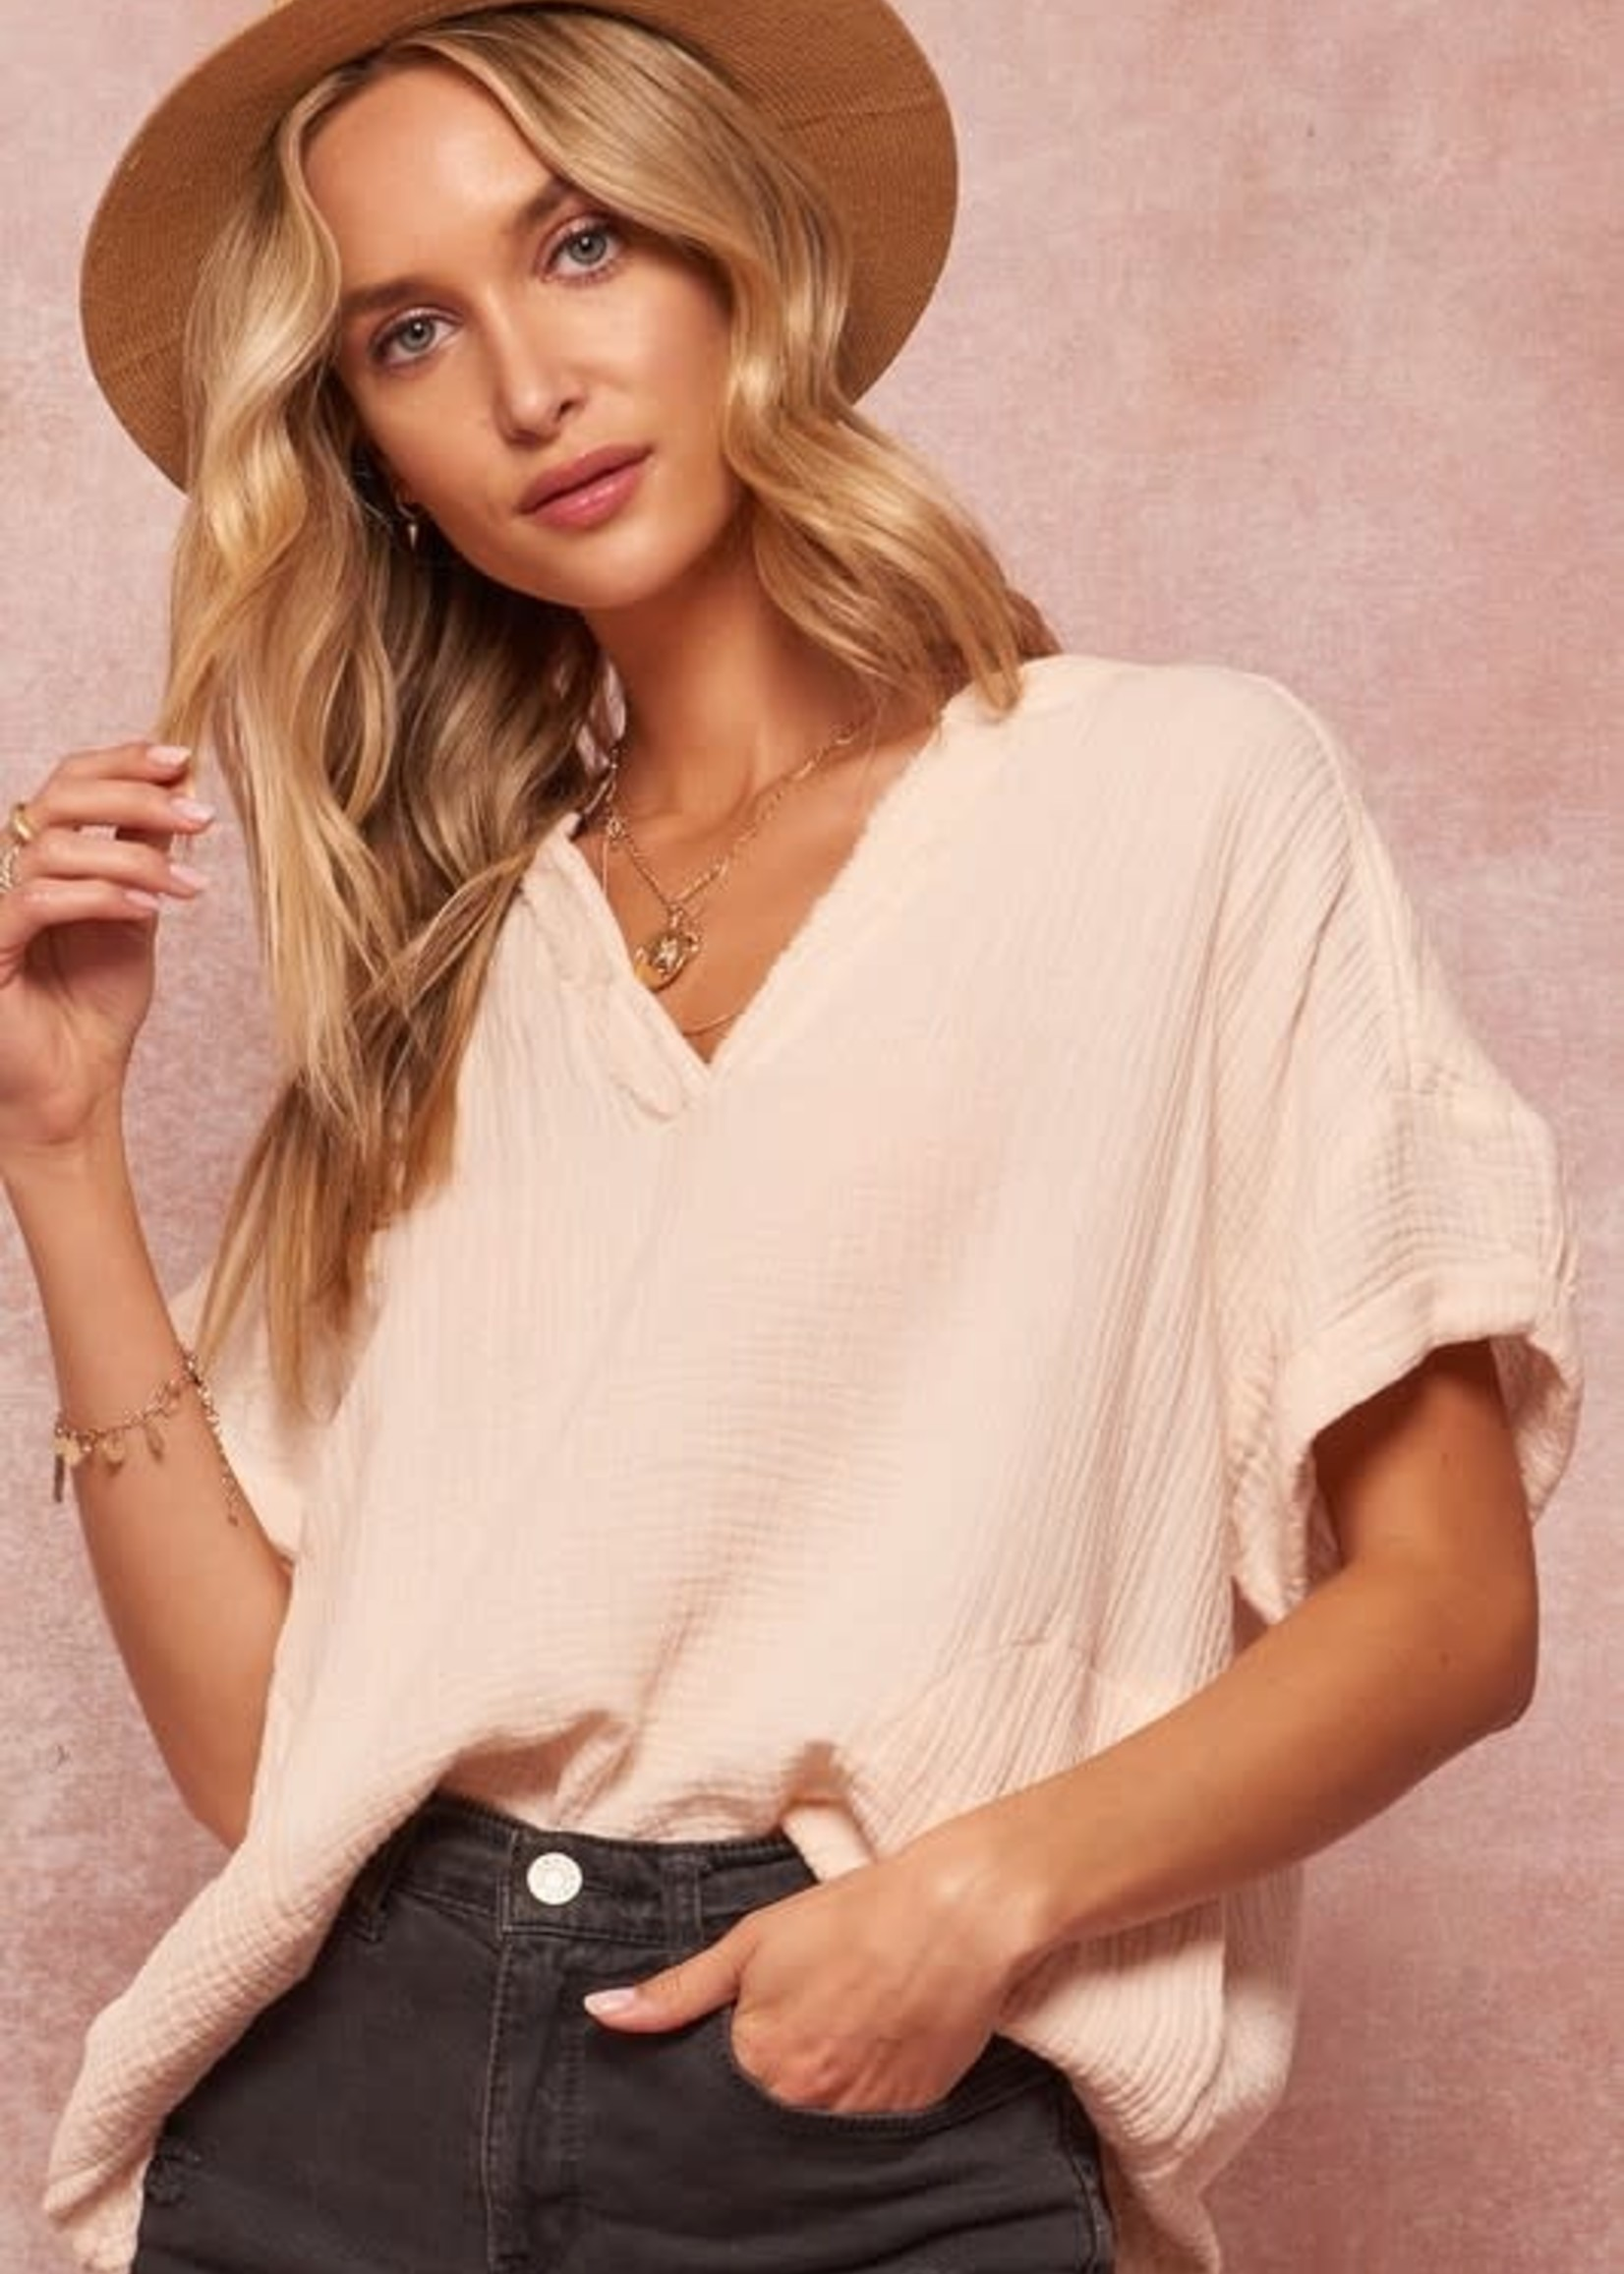 Crinkle Cotton Creme V Neck Top - Cream